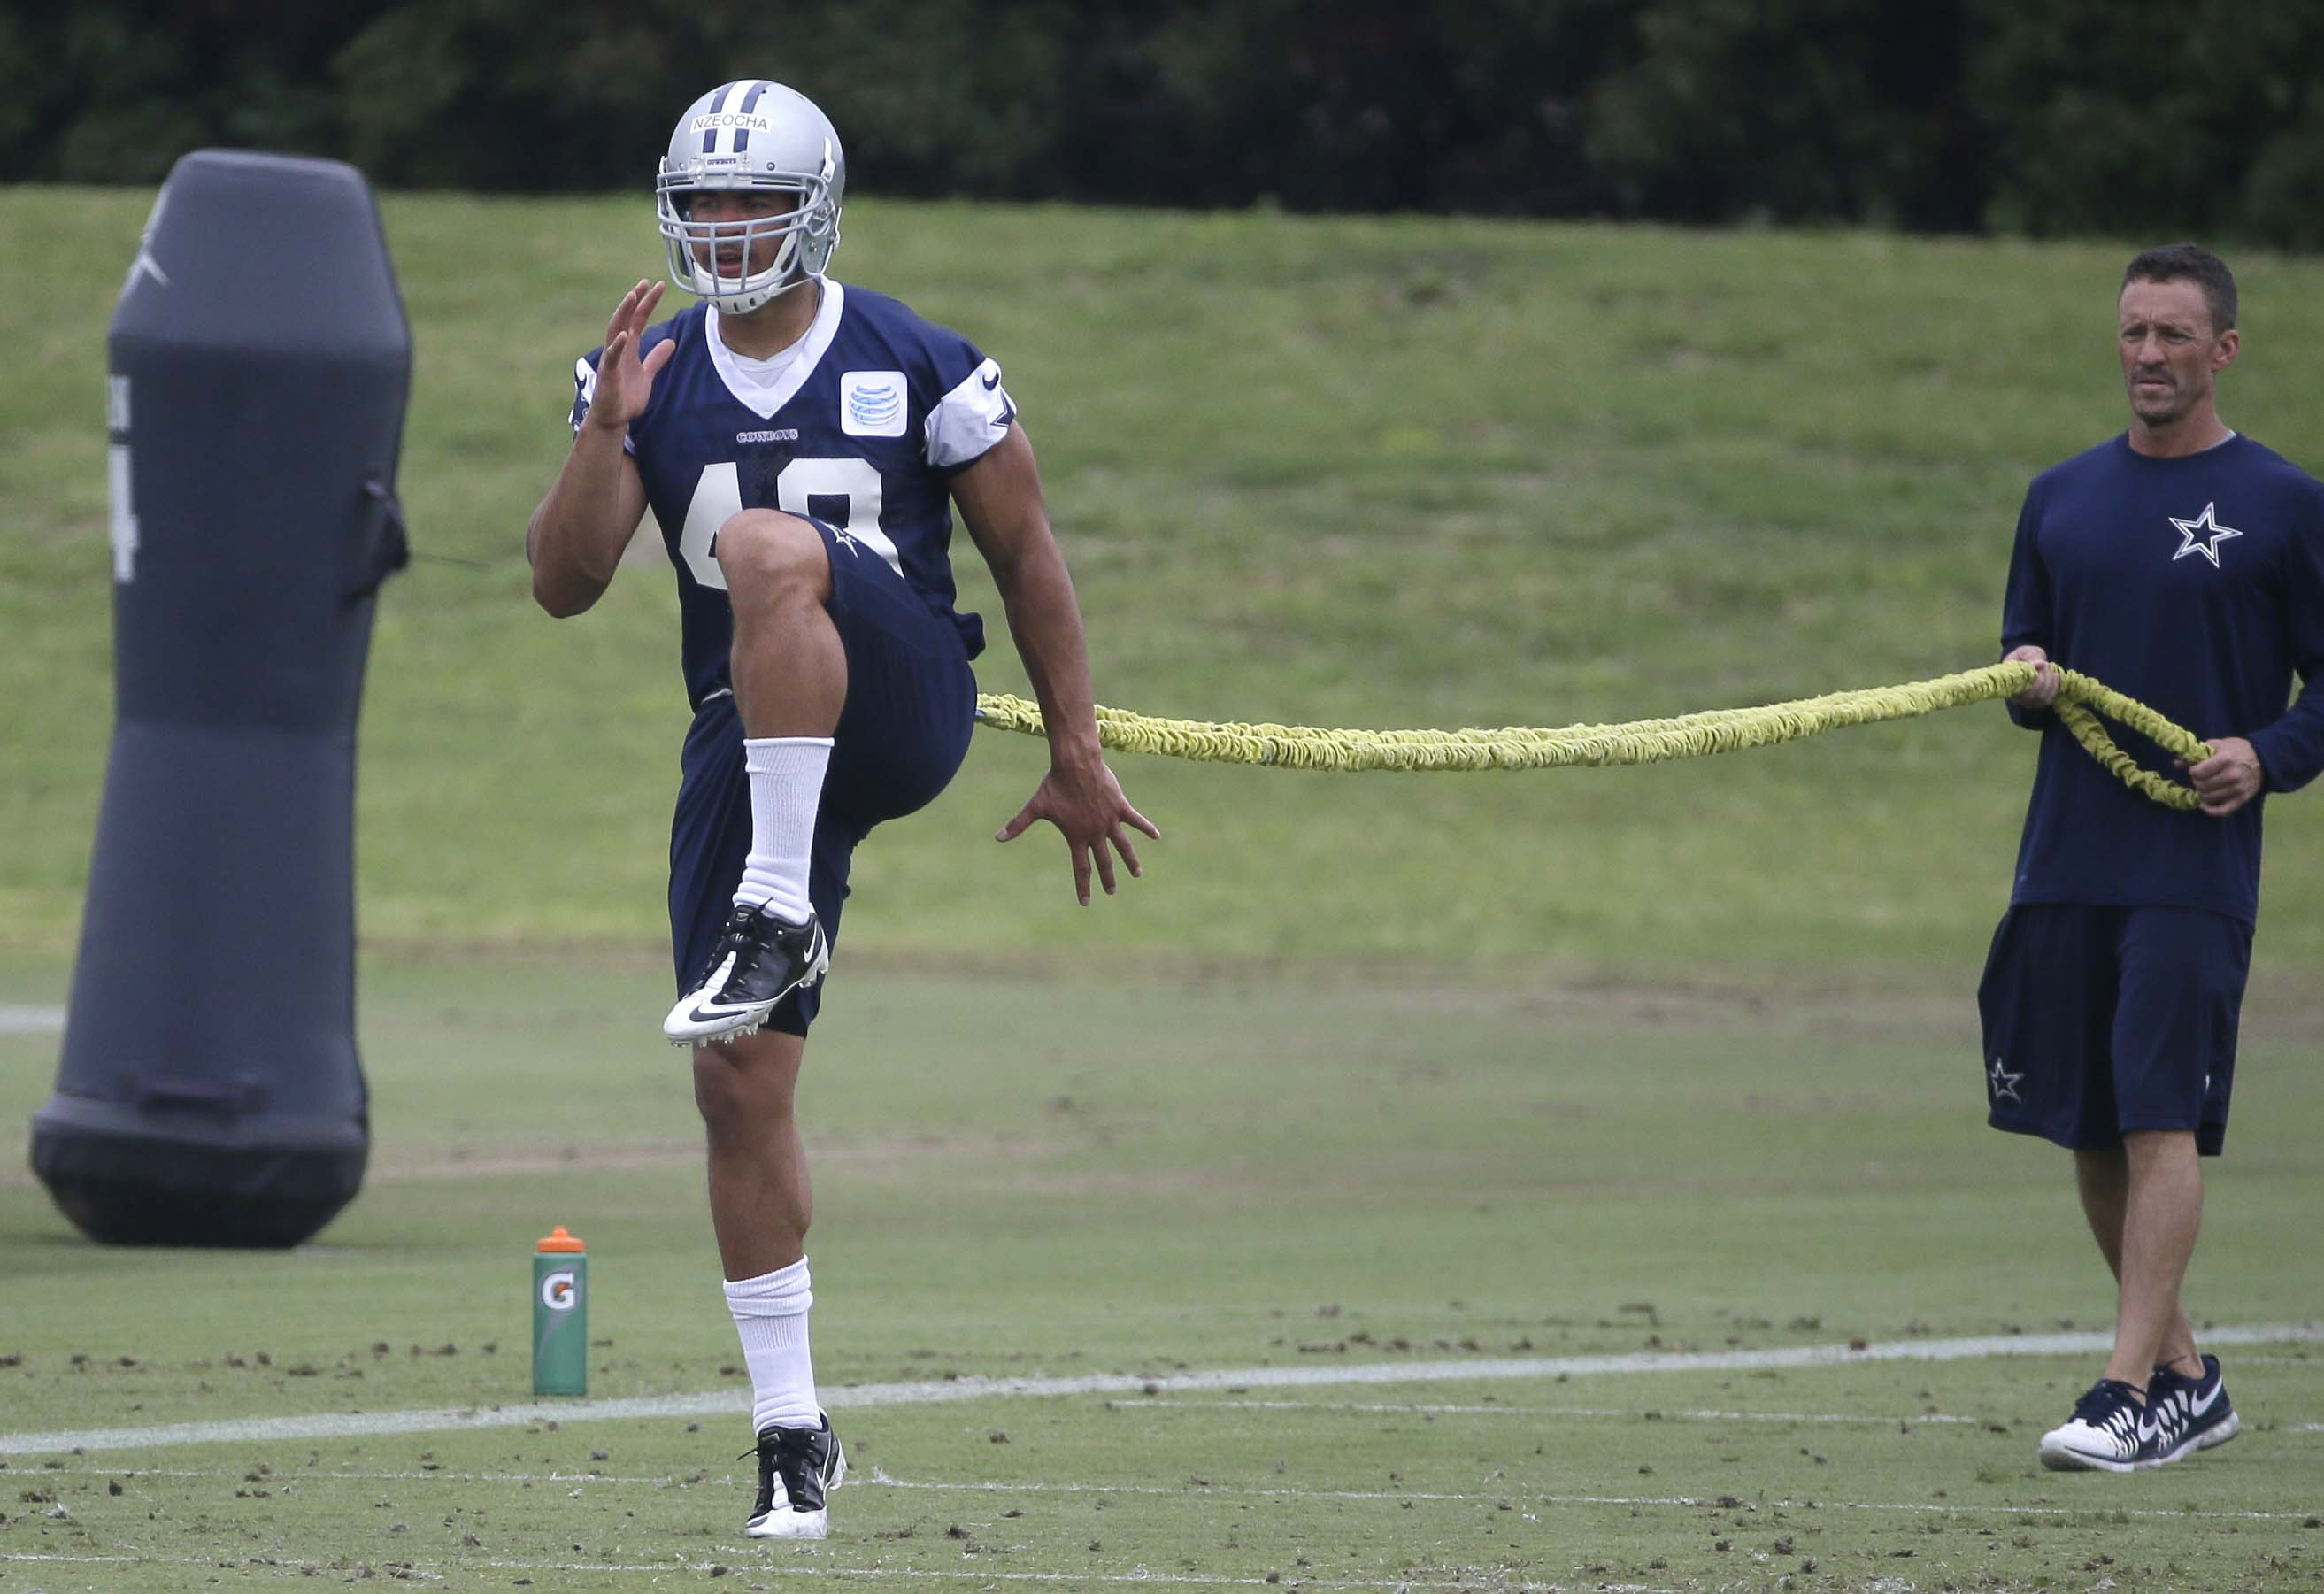 Cowboys Headlines - Cowboys Sophomores: LB Mark Nzeocha